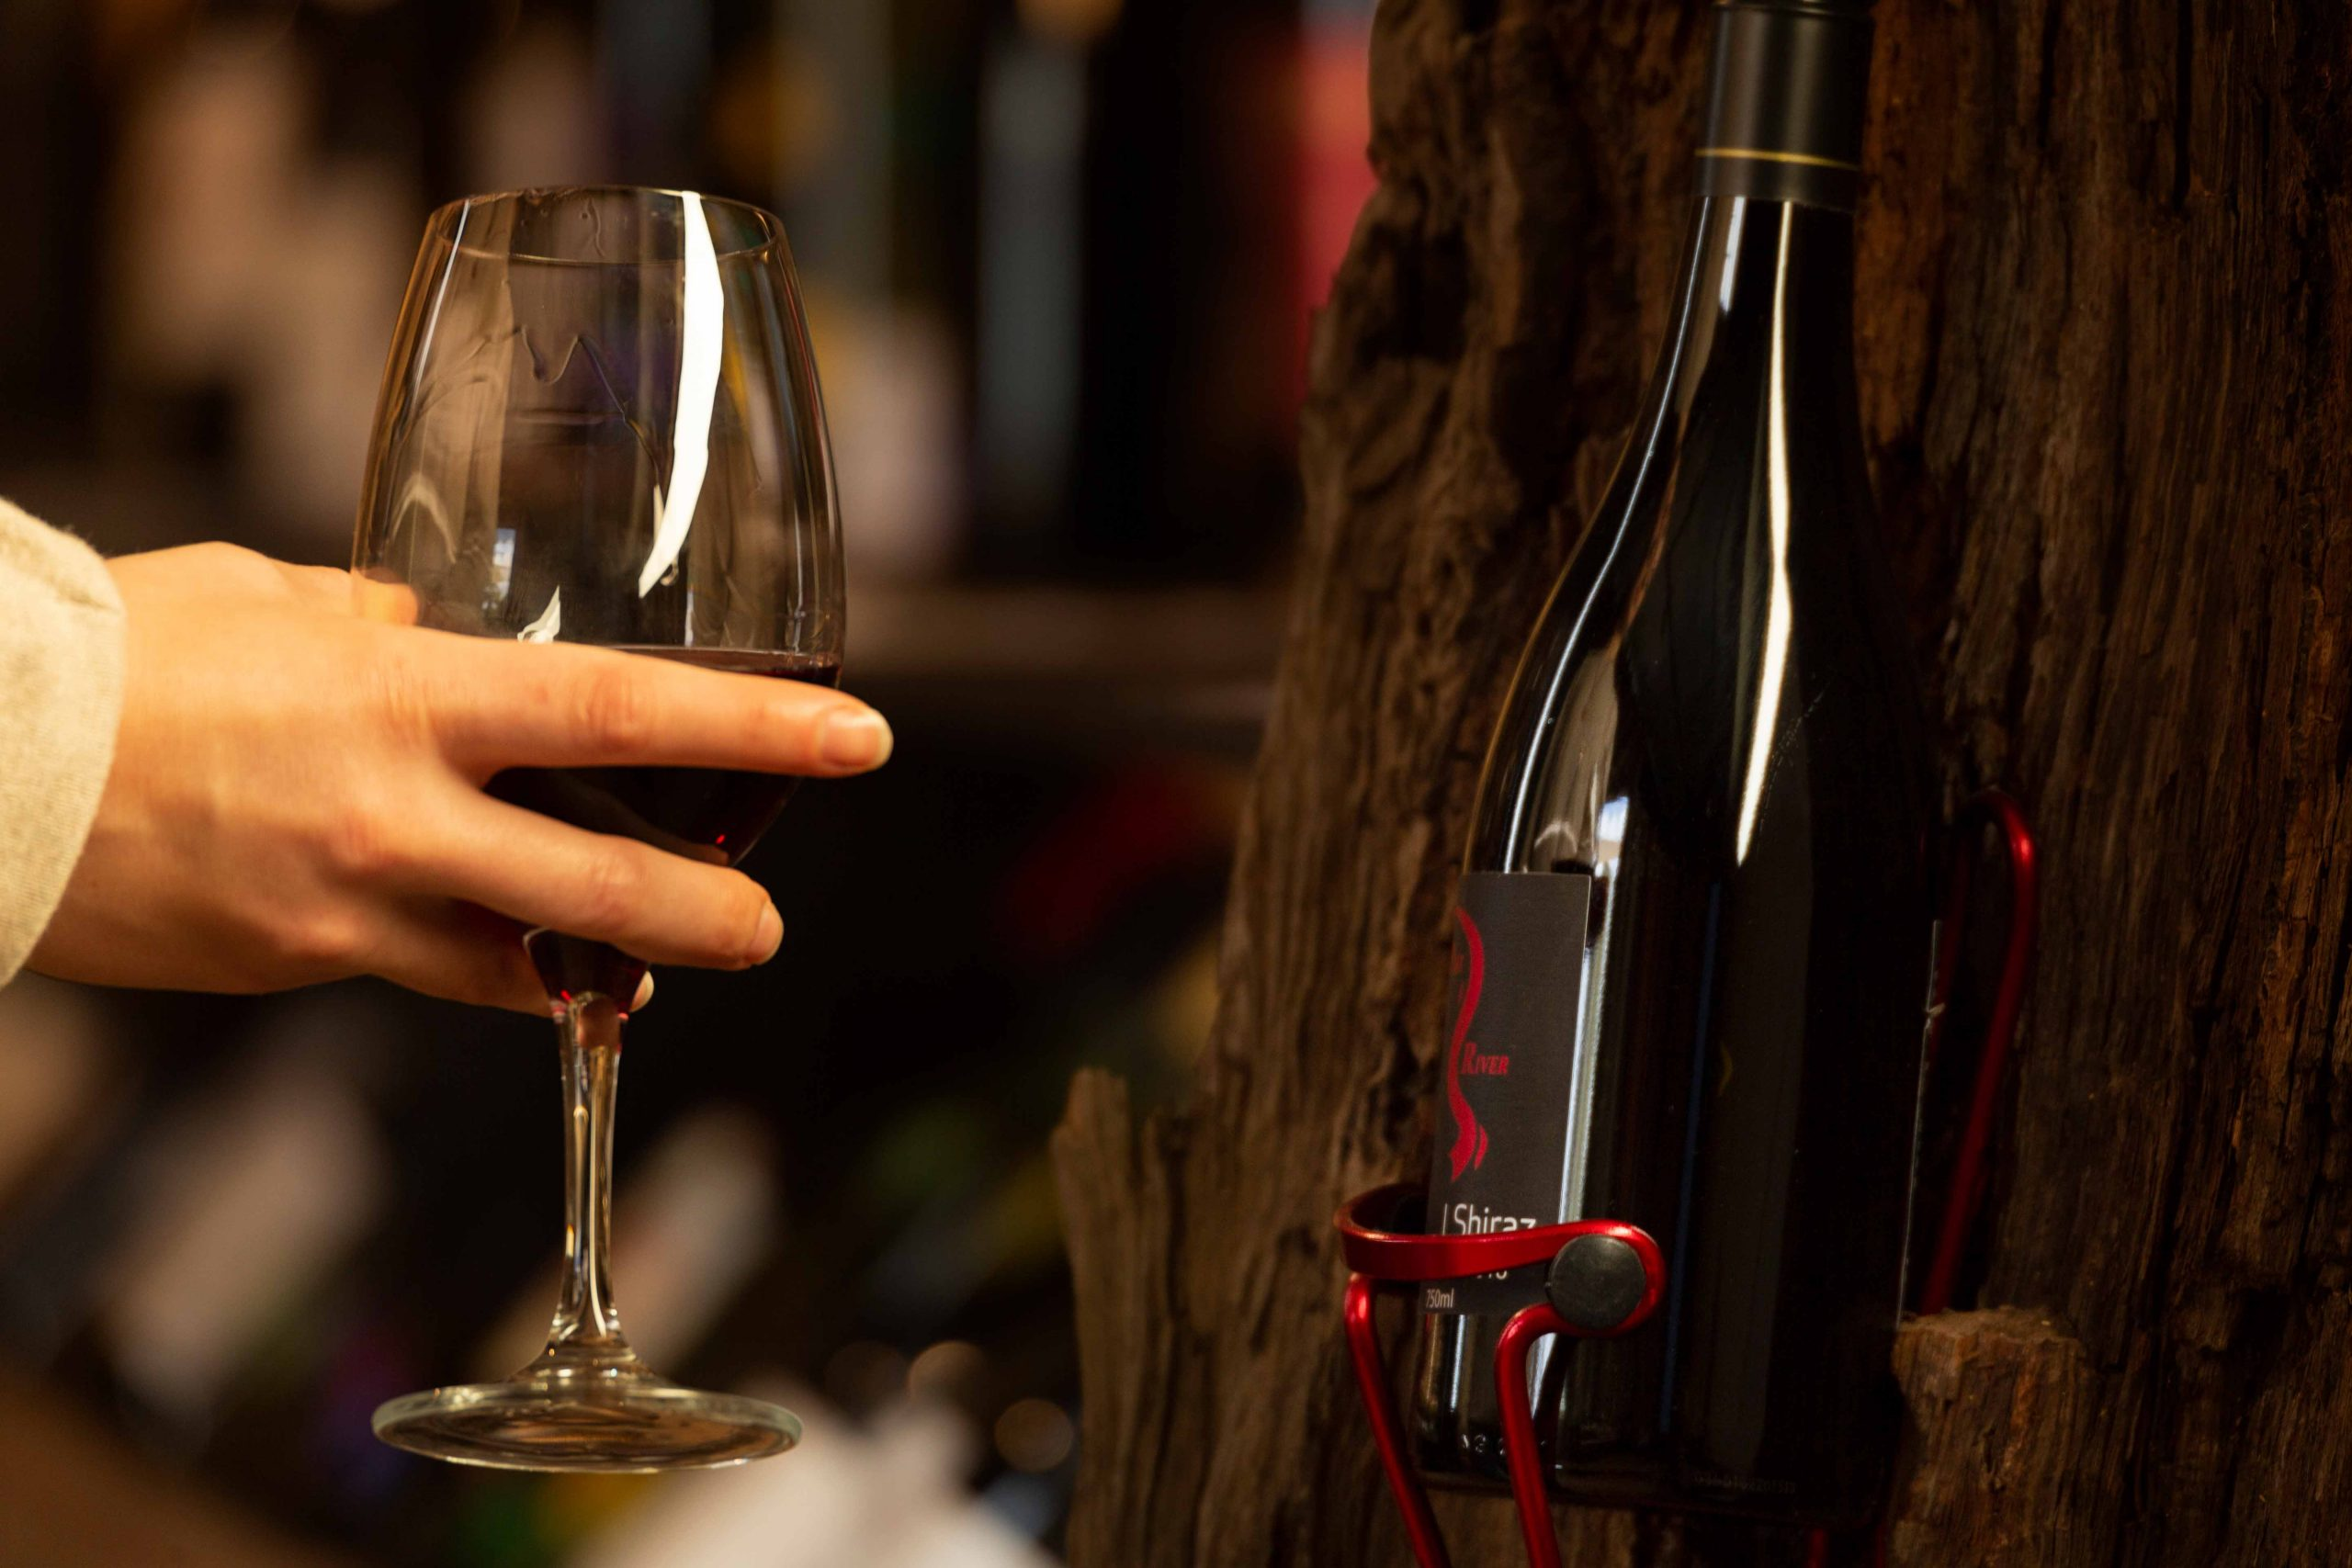 PIKE RIVER WINES